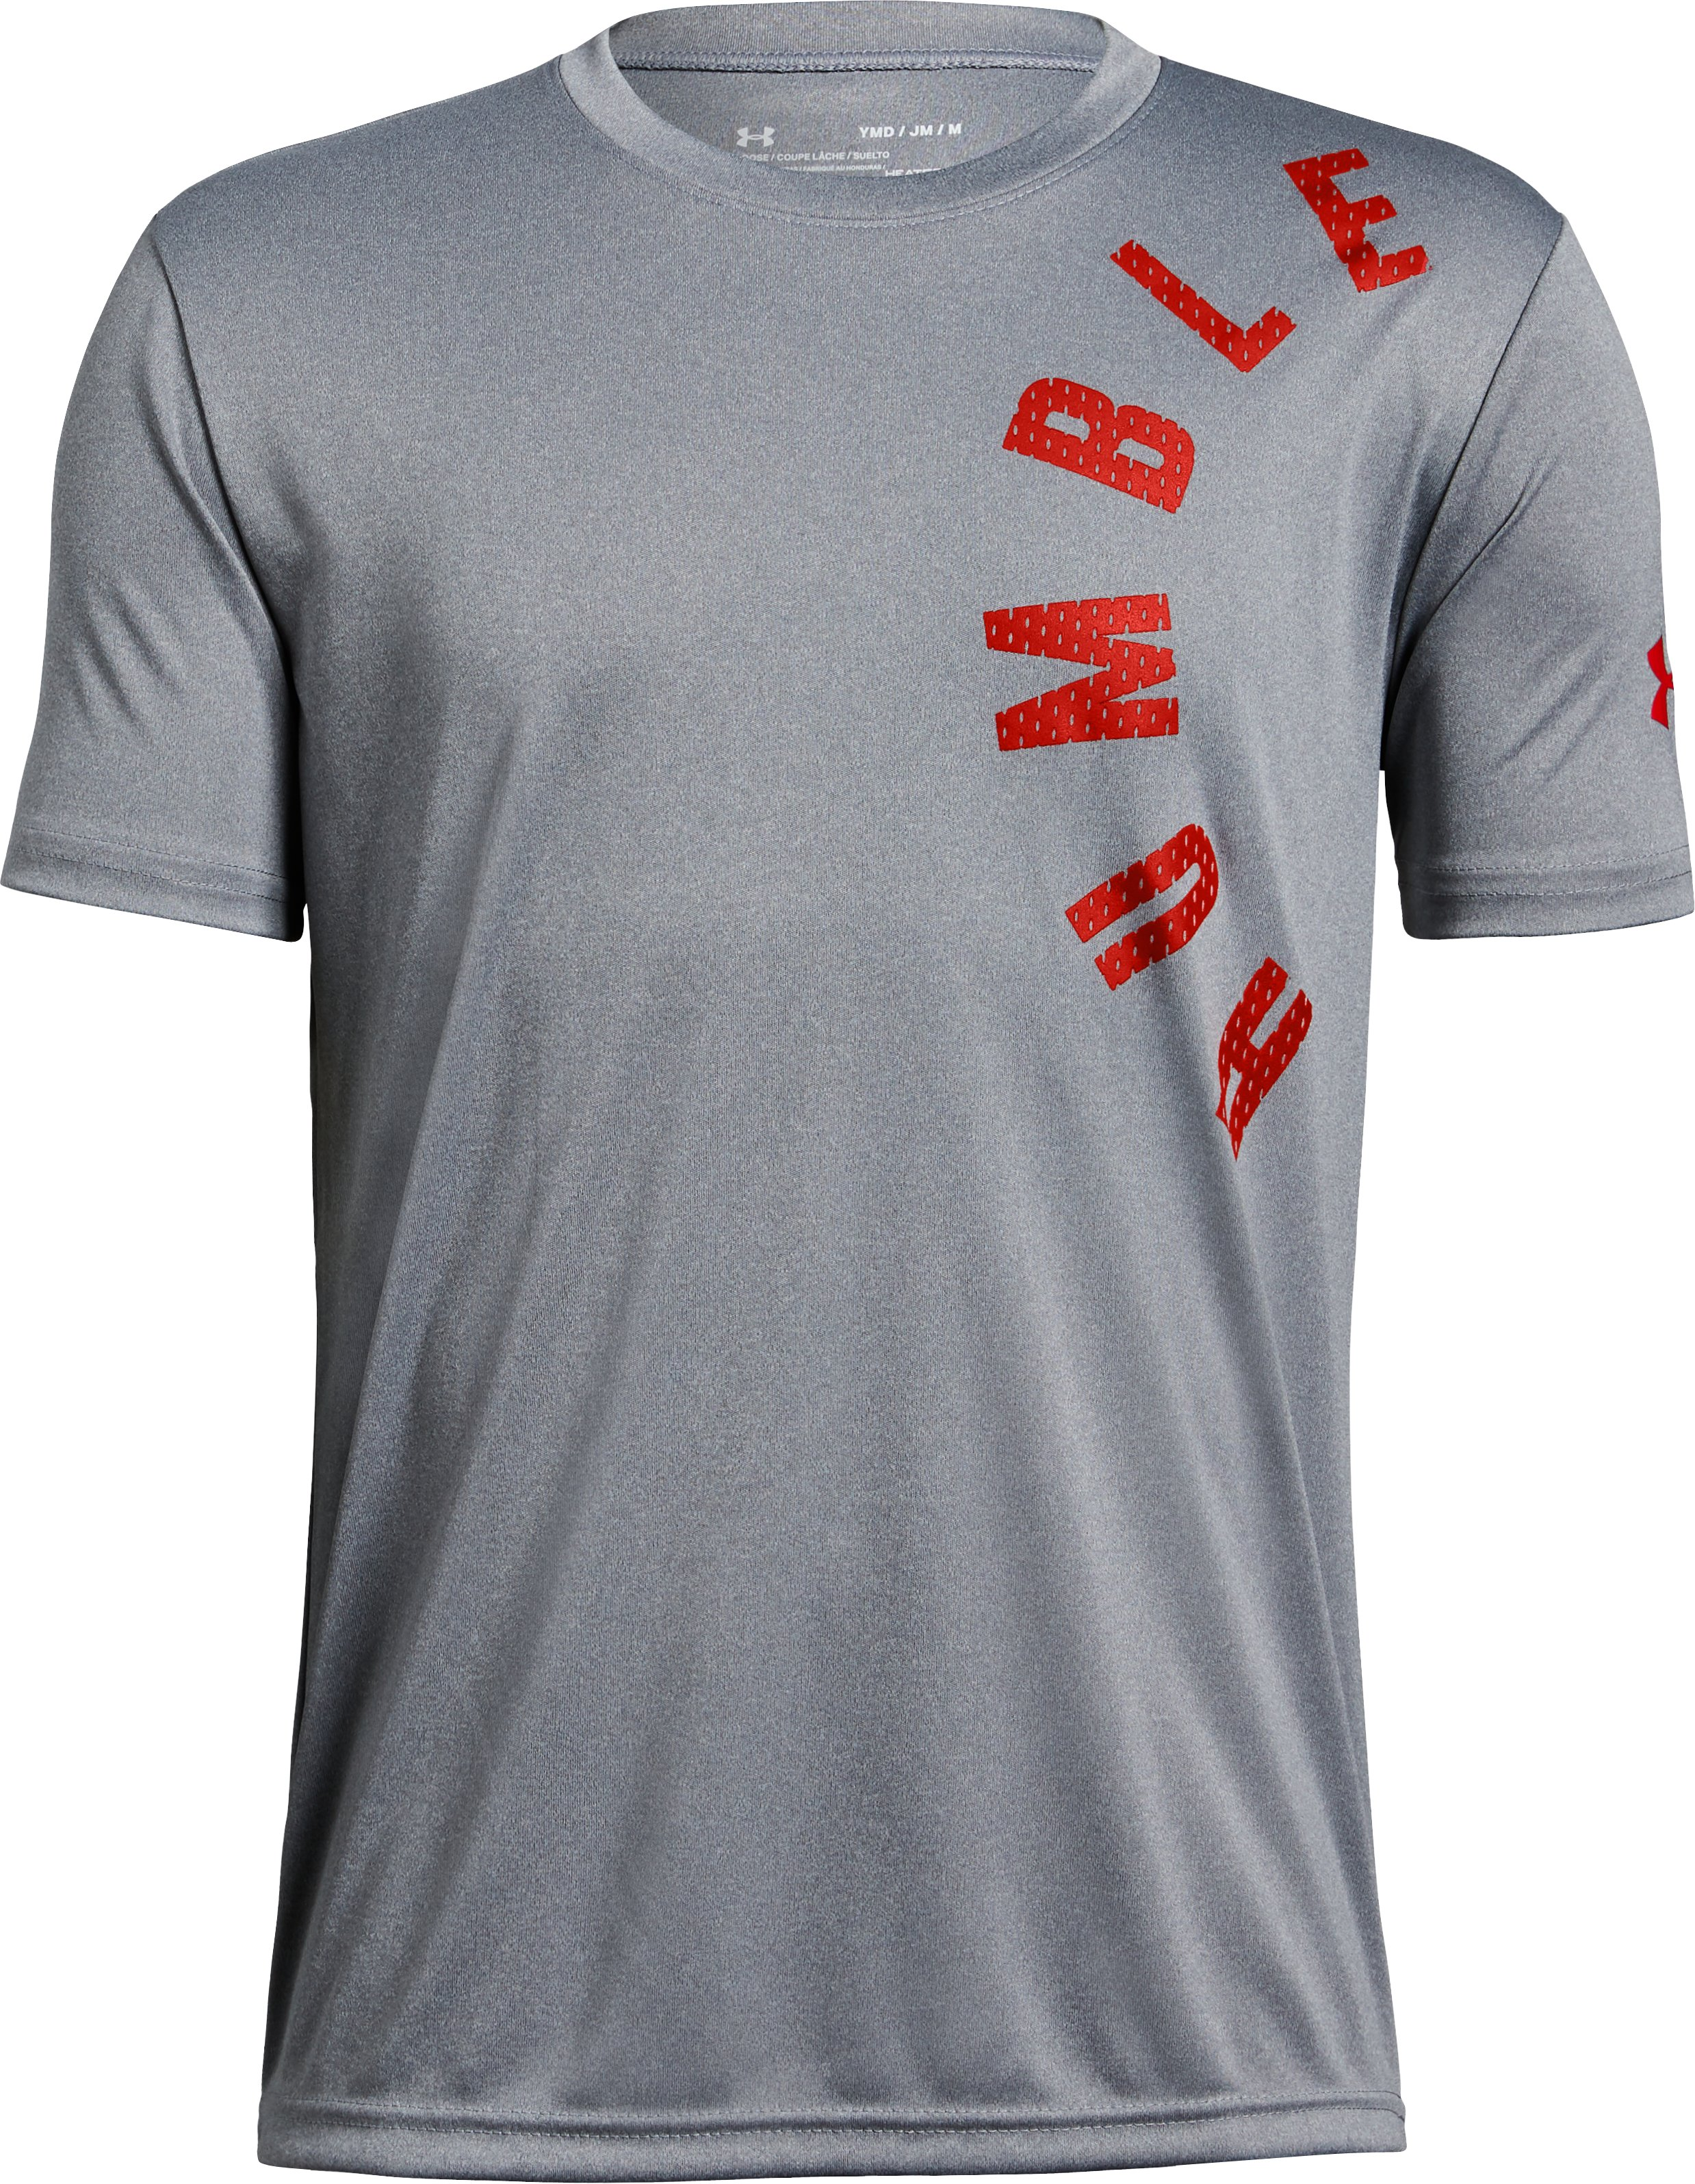 Boys' UA Humble & Hungry Short Sleeve T-Shirt, STEEL LIGHT HEATHER, zoomed